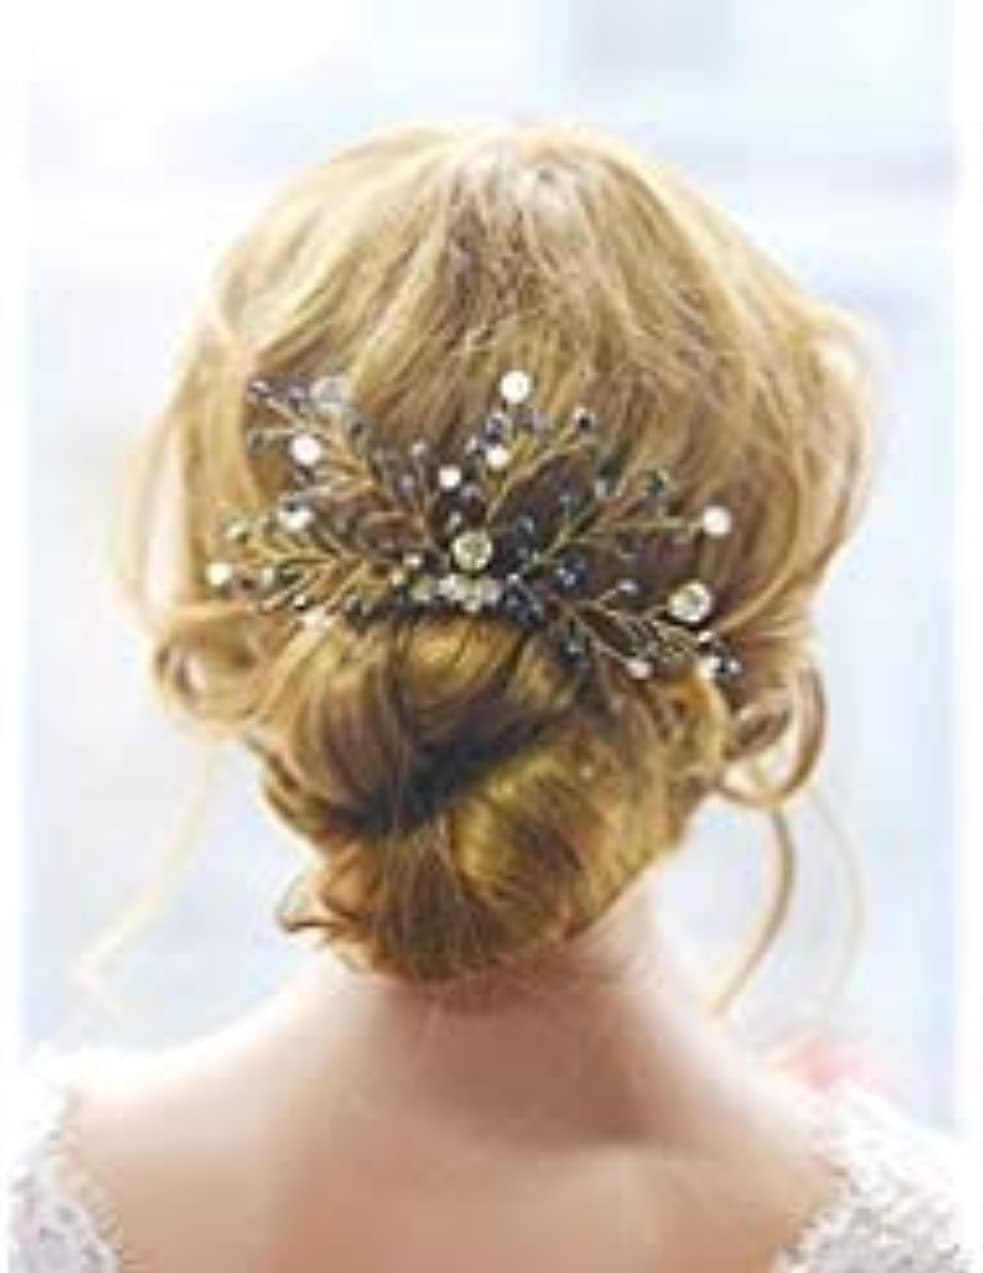 導入するジャケット致死FXmimior Bridal Black Vintage Wedding Party Crystal Rhinestone Vintage Hair Comb Hair Accessories [並行輸入品]